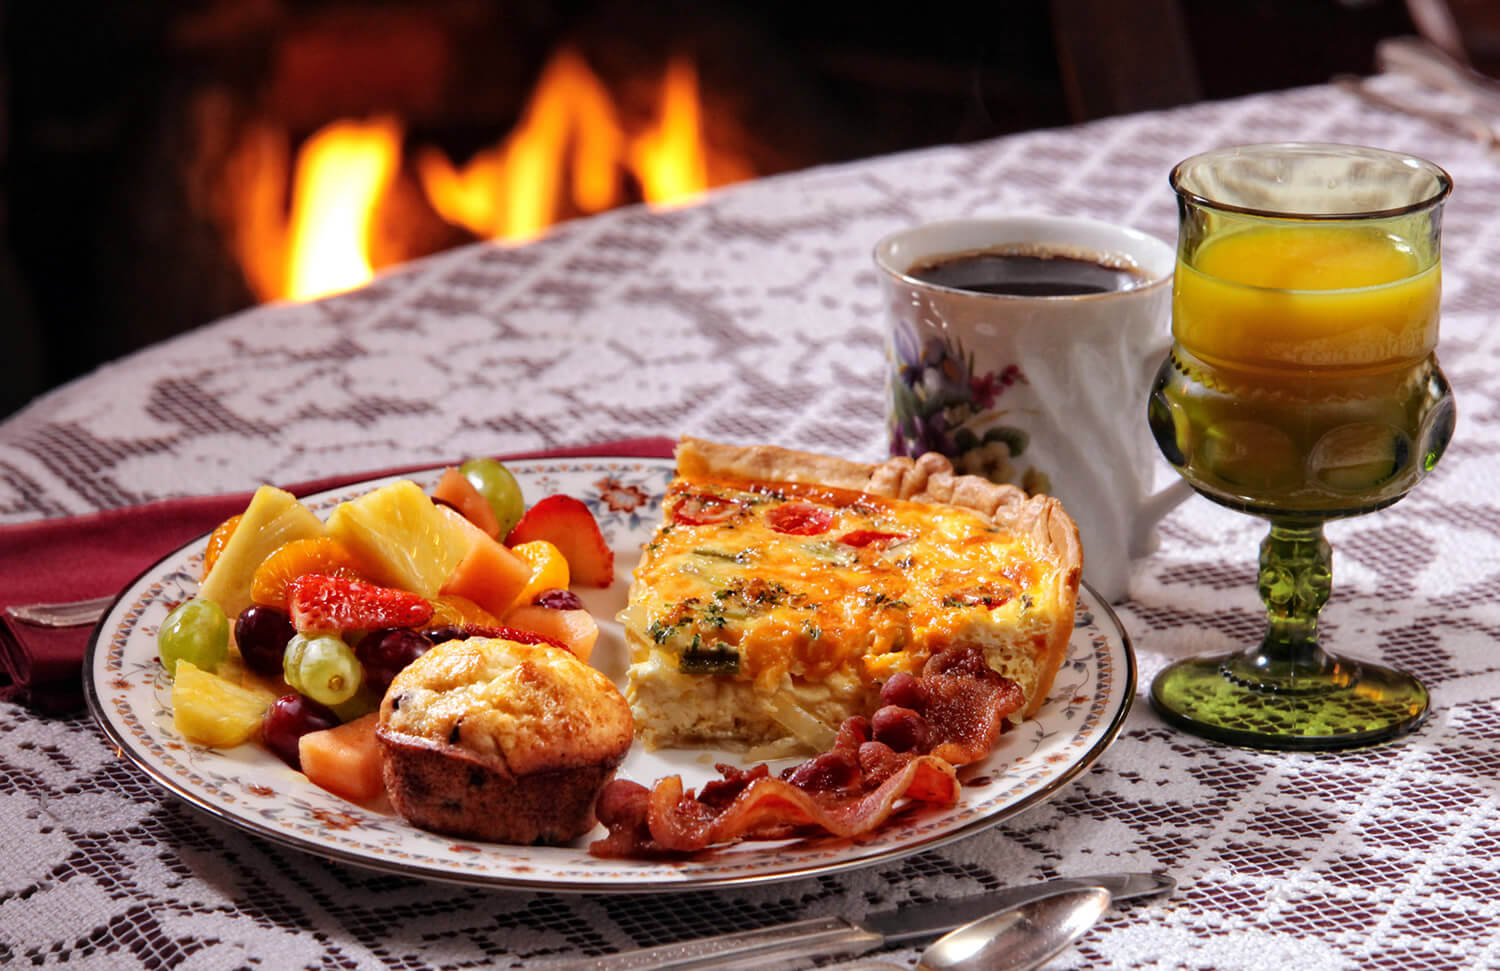 Vegetable Quiche with blueberry muffin, bacon and fresh fruit accompanied by black coffee and orange juice